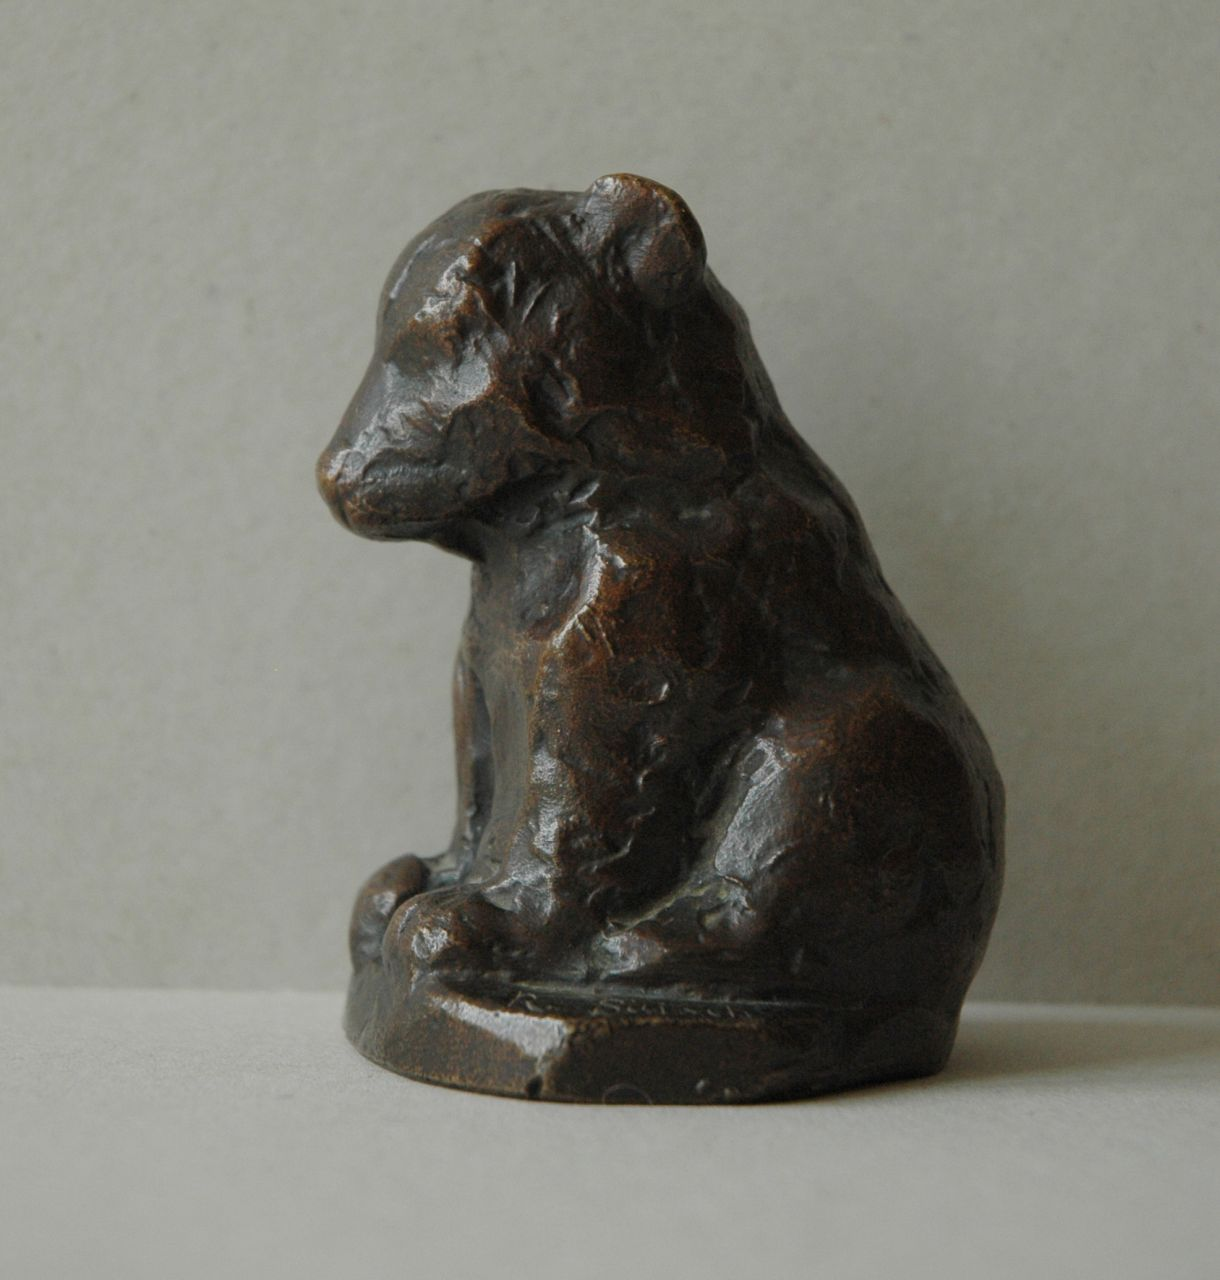 Baisch R.C.  | Rudolf Christian Baisch, A sitting bear cub, bronze with a brown patina 9.6 x 7.4 cm, signed on base and executed 1953